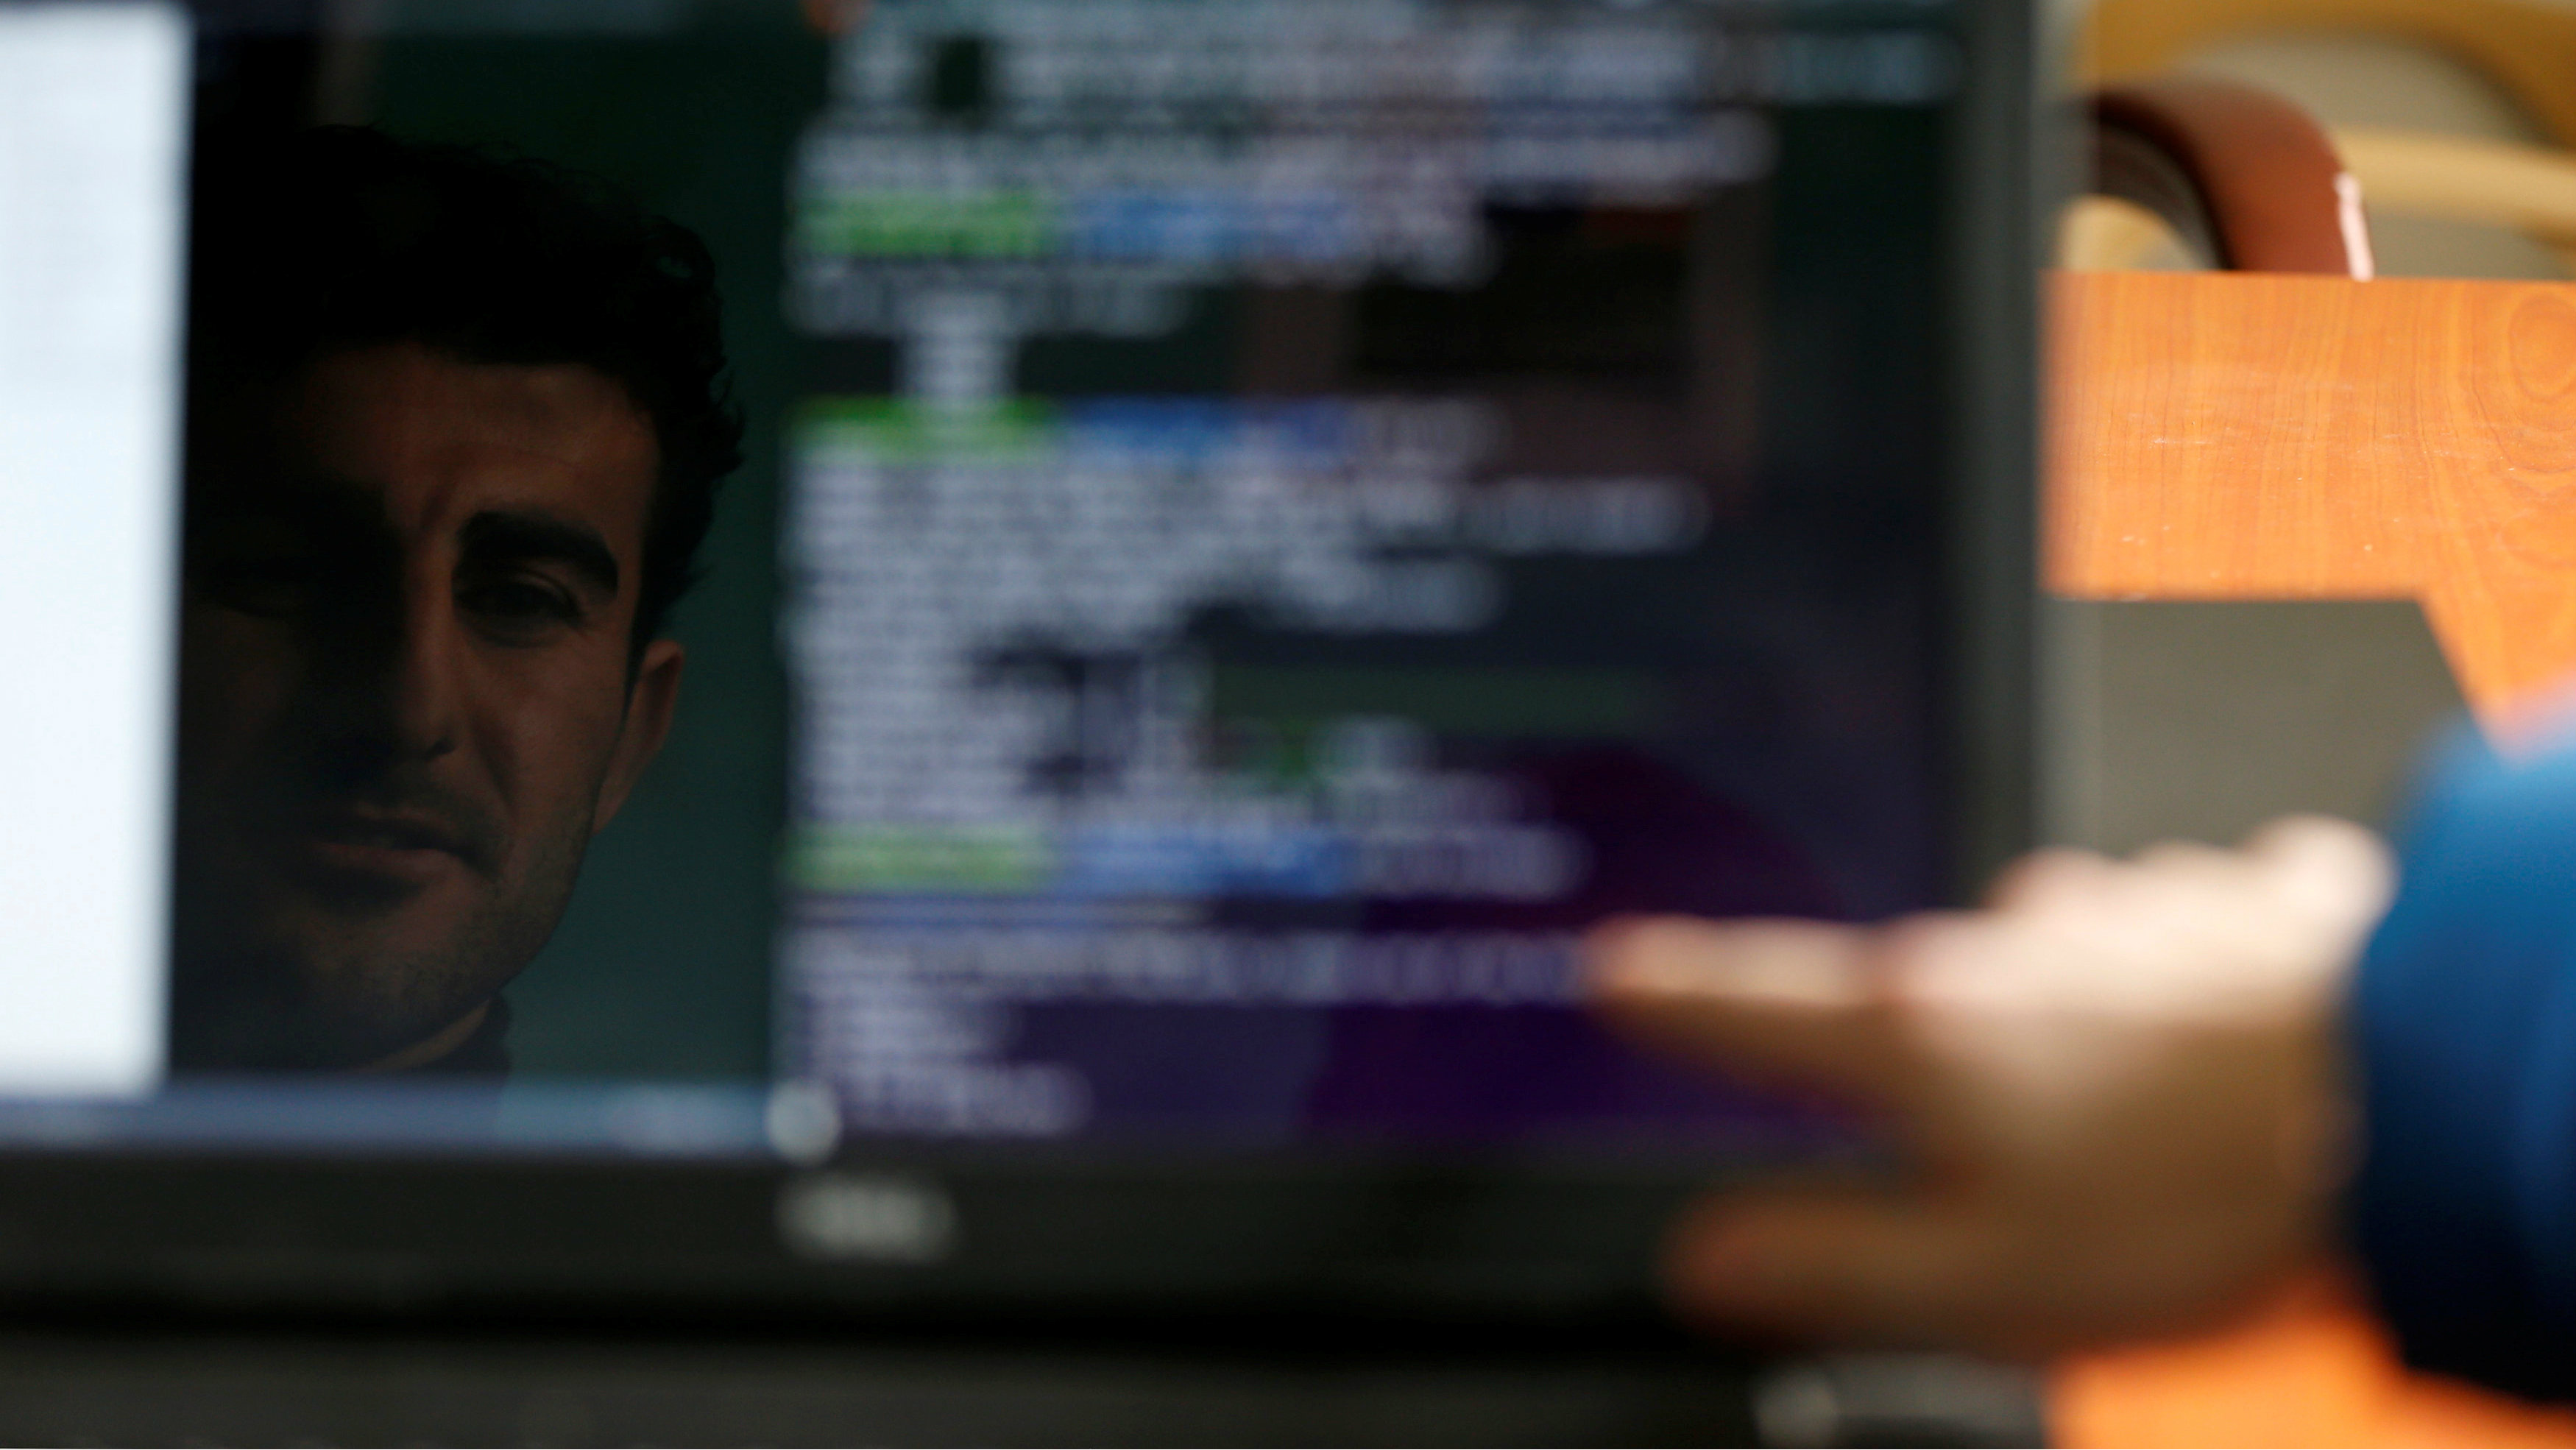 One of the Syrian refugees and displaced Iraqis students is reflected in the computer screen as he attends a class to learn basic and advanced coding skills at Re:Coded boot camp, in Erbil, Iraq February 1, 2017. Picture taken February 1, 2017. REUTERS/Muhammad Hamed